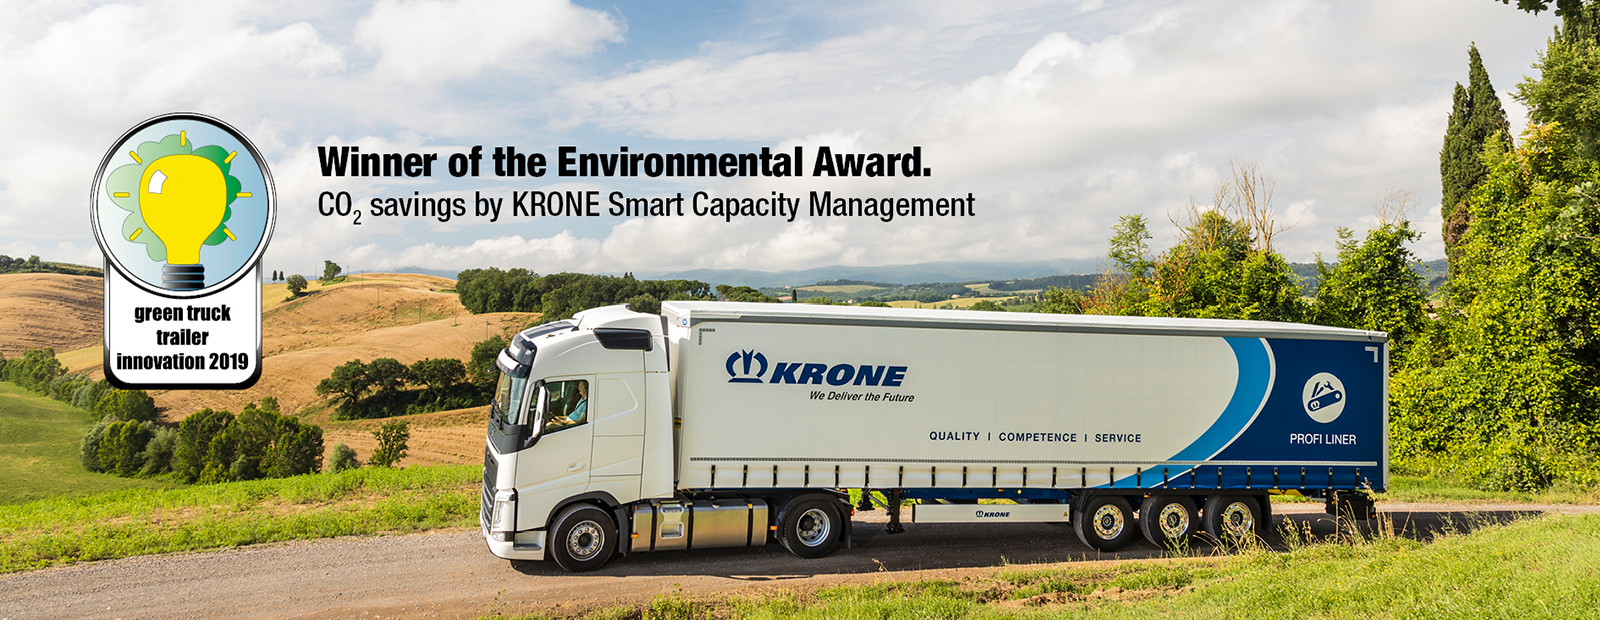 Krone wins Green Truck Trailer Innovation Award